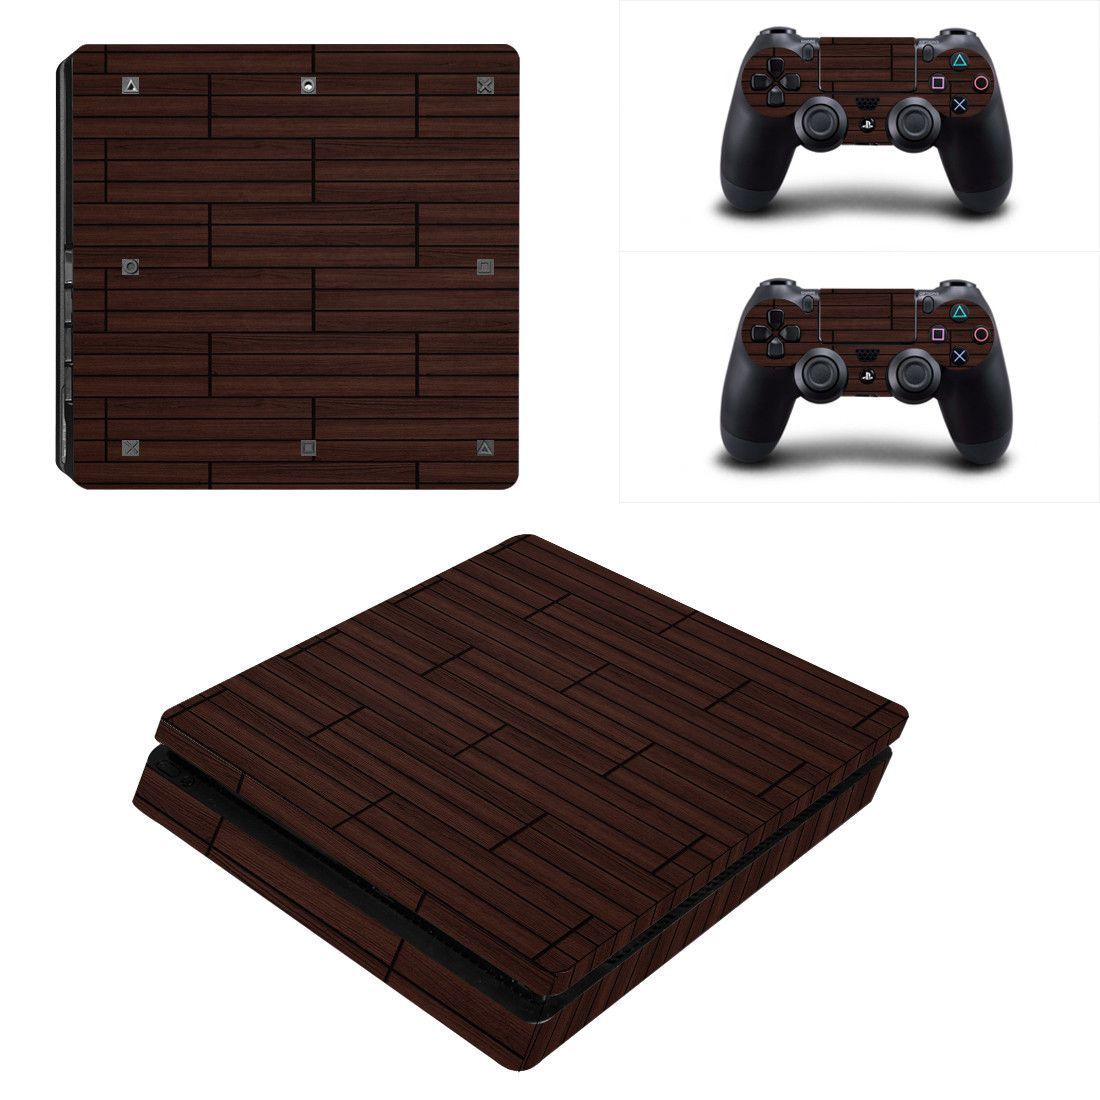 Wooden Design Ps4 Slim Edition Skin Decal For Console And 2